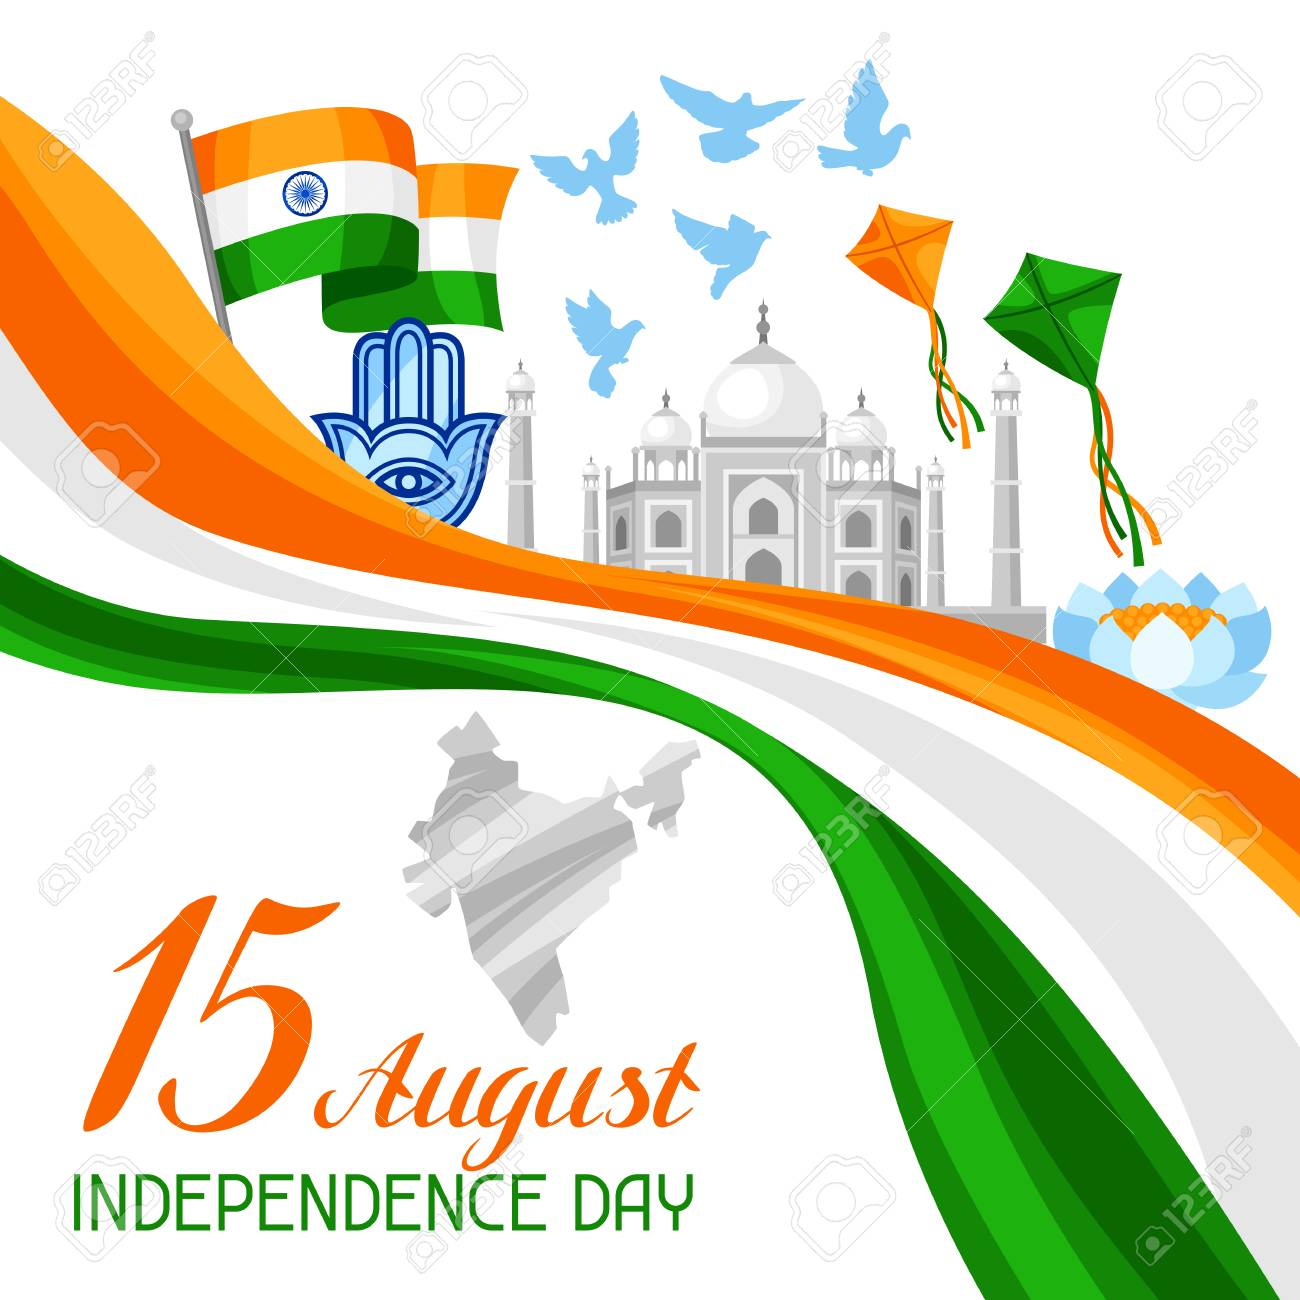 India independence day greeting card celebration 15 th of august india independence day greeting card celebration 15 th of august stock vector 81580222 m4hsunfo